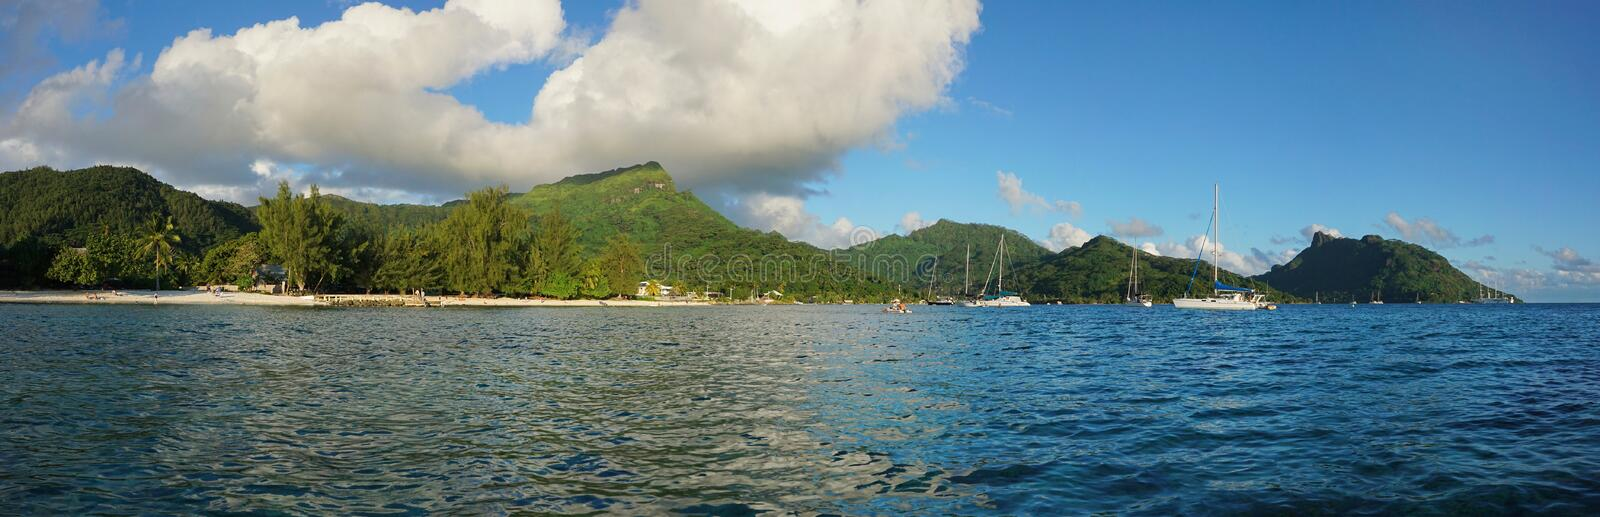 Panorama of Huahine island in French Polynesia. Panorama of Huahine island near the beach of Fare village, South Pacific ocean, French Polynesia stock images